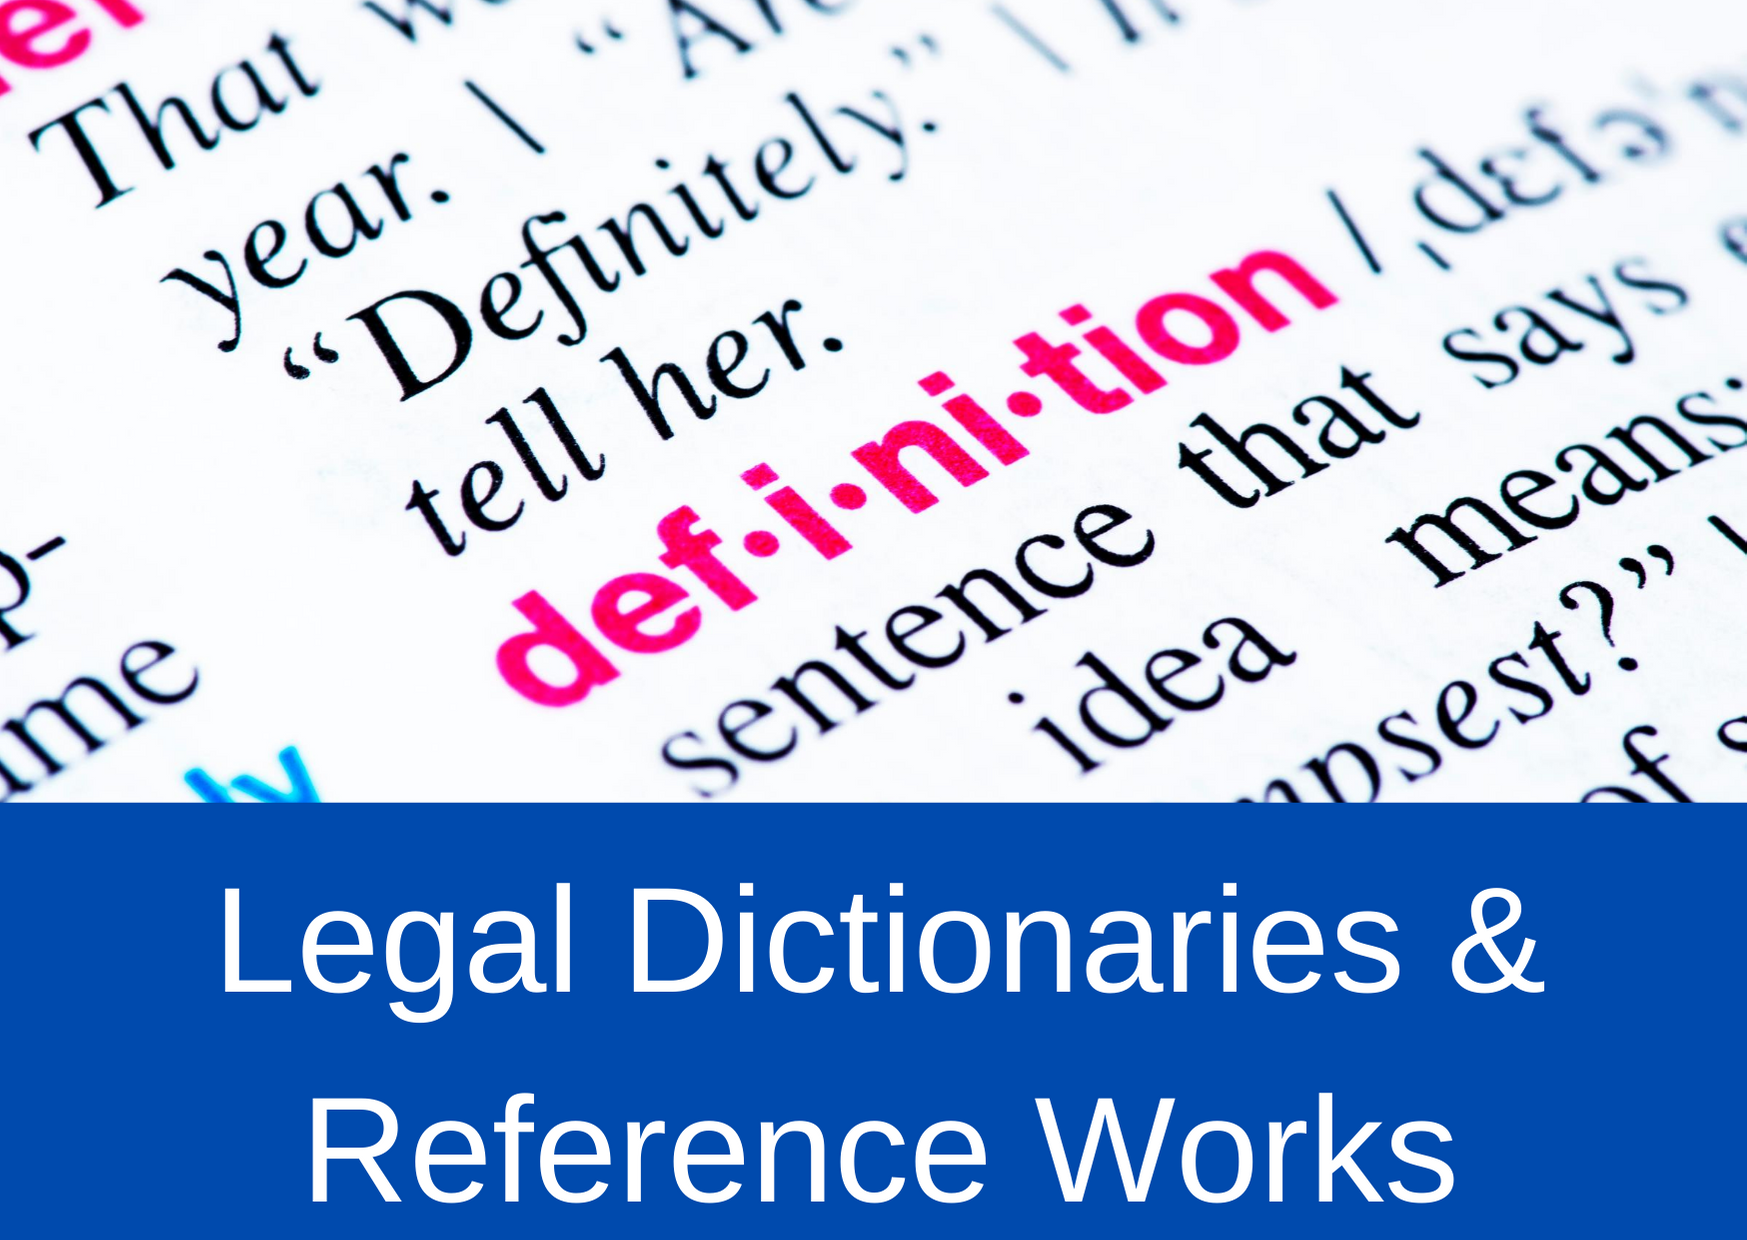 Legal Reference Works